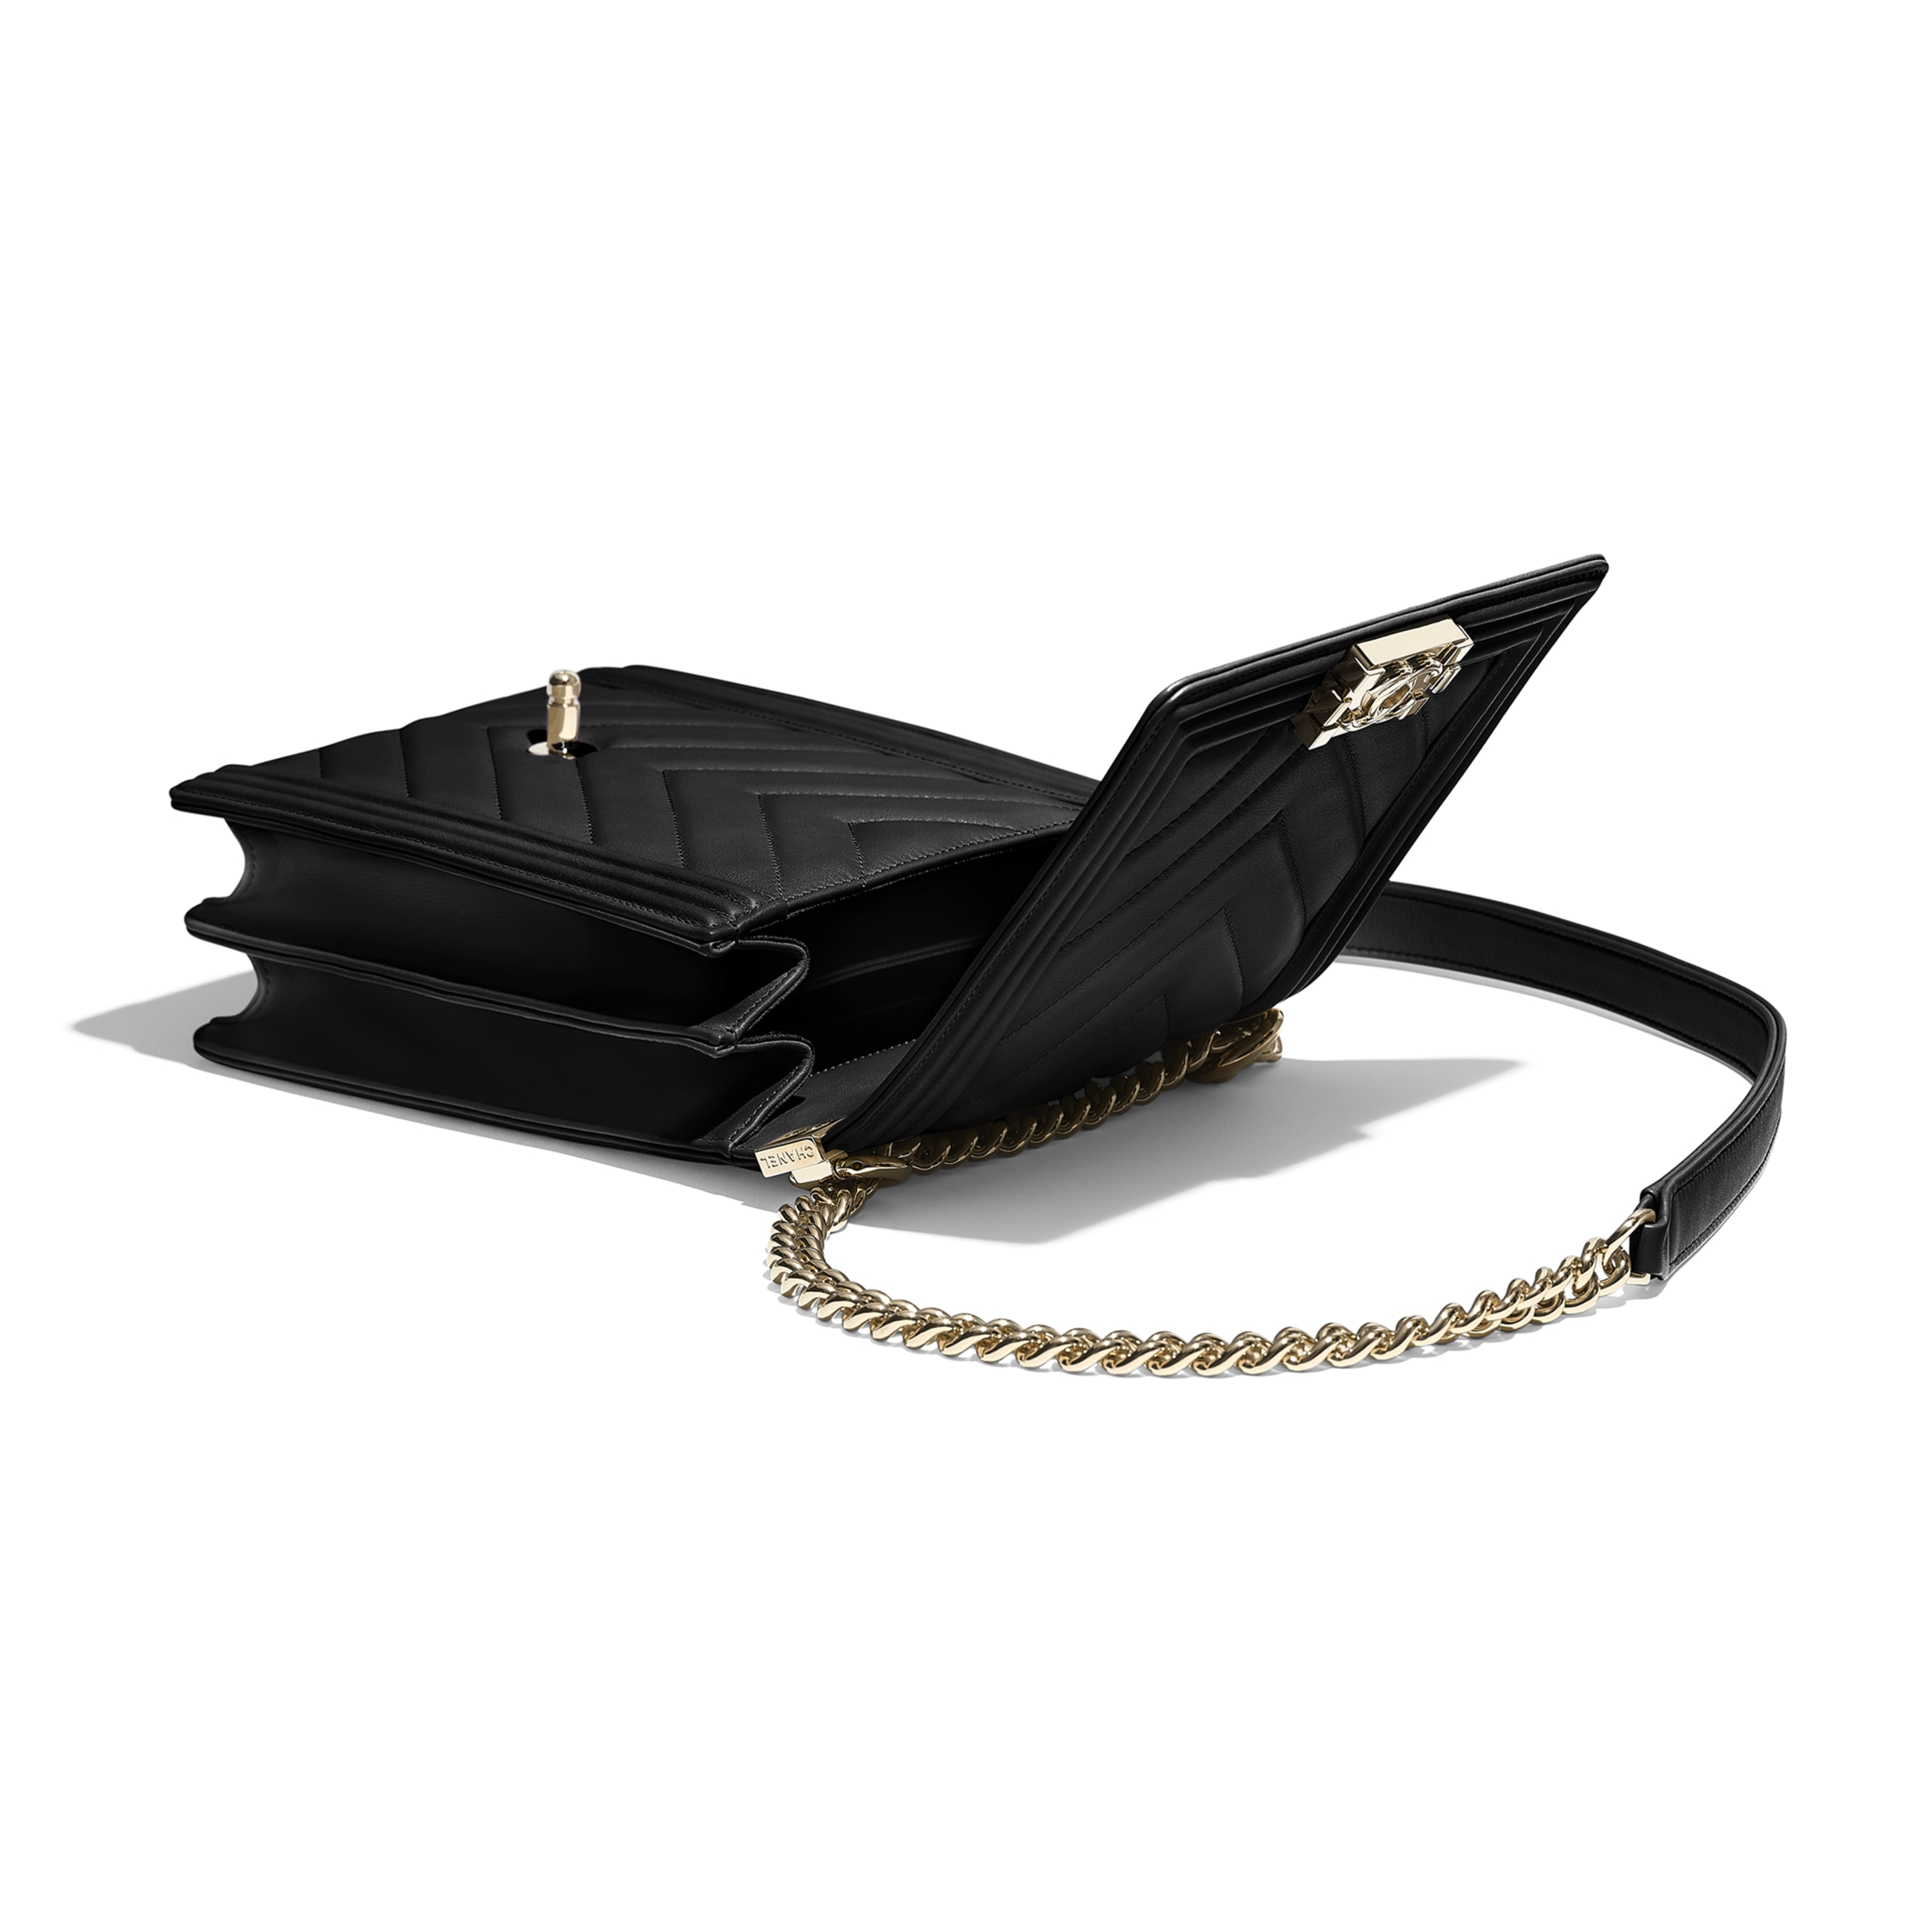 BOY CHANEL Handbag - Black - Calfskin & Gold-Tone Metal - Extra view - see standard sized version